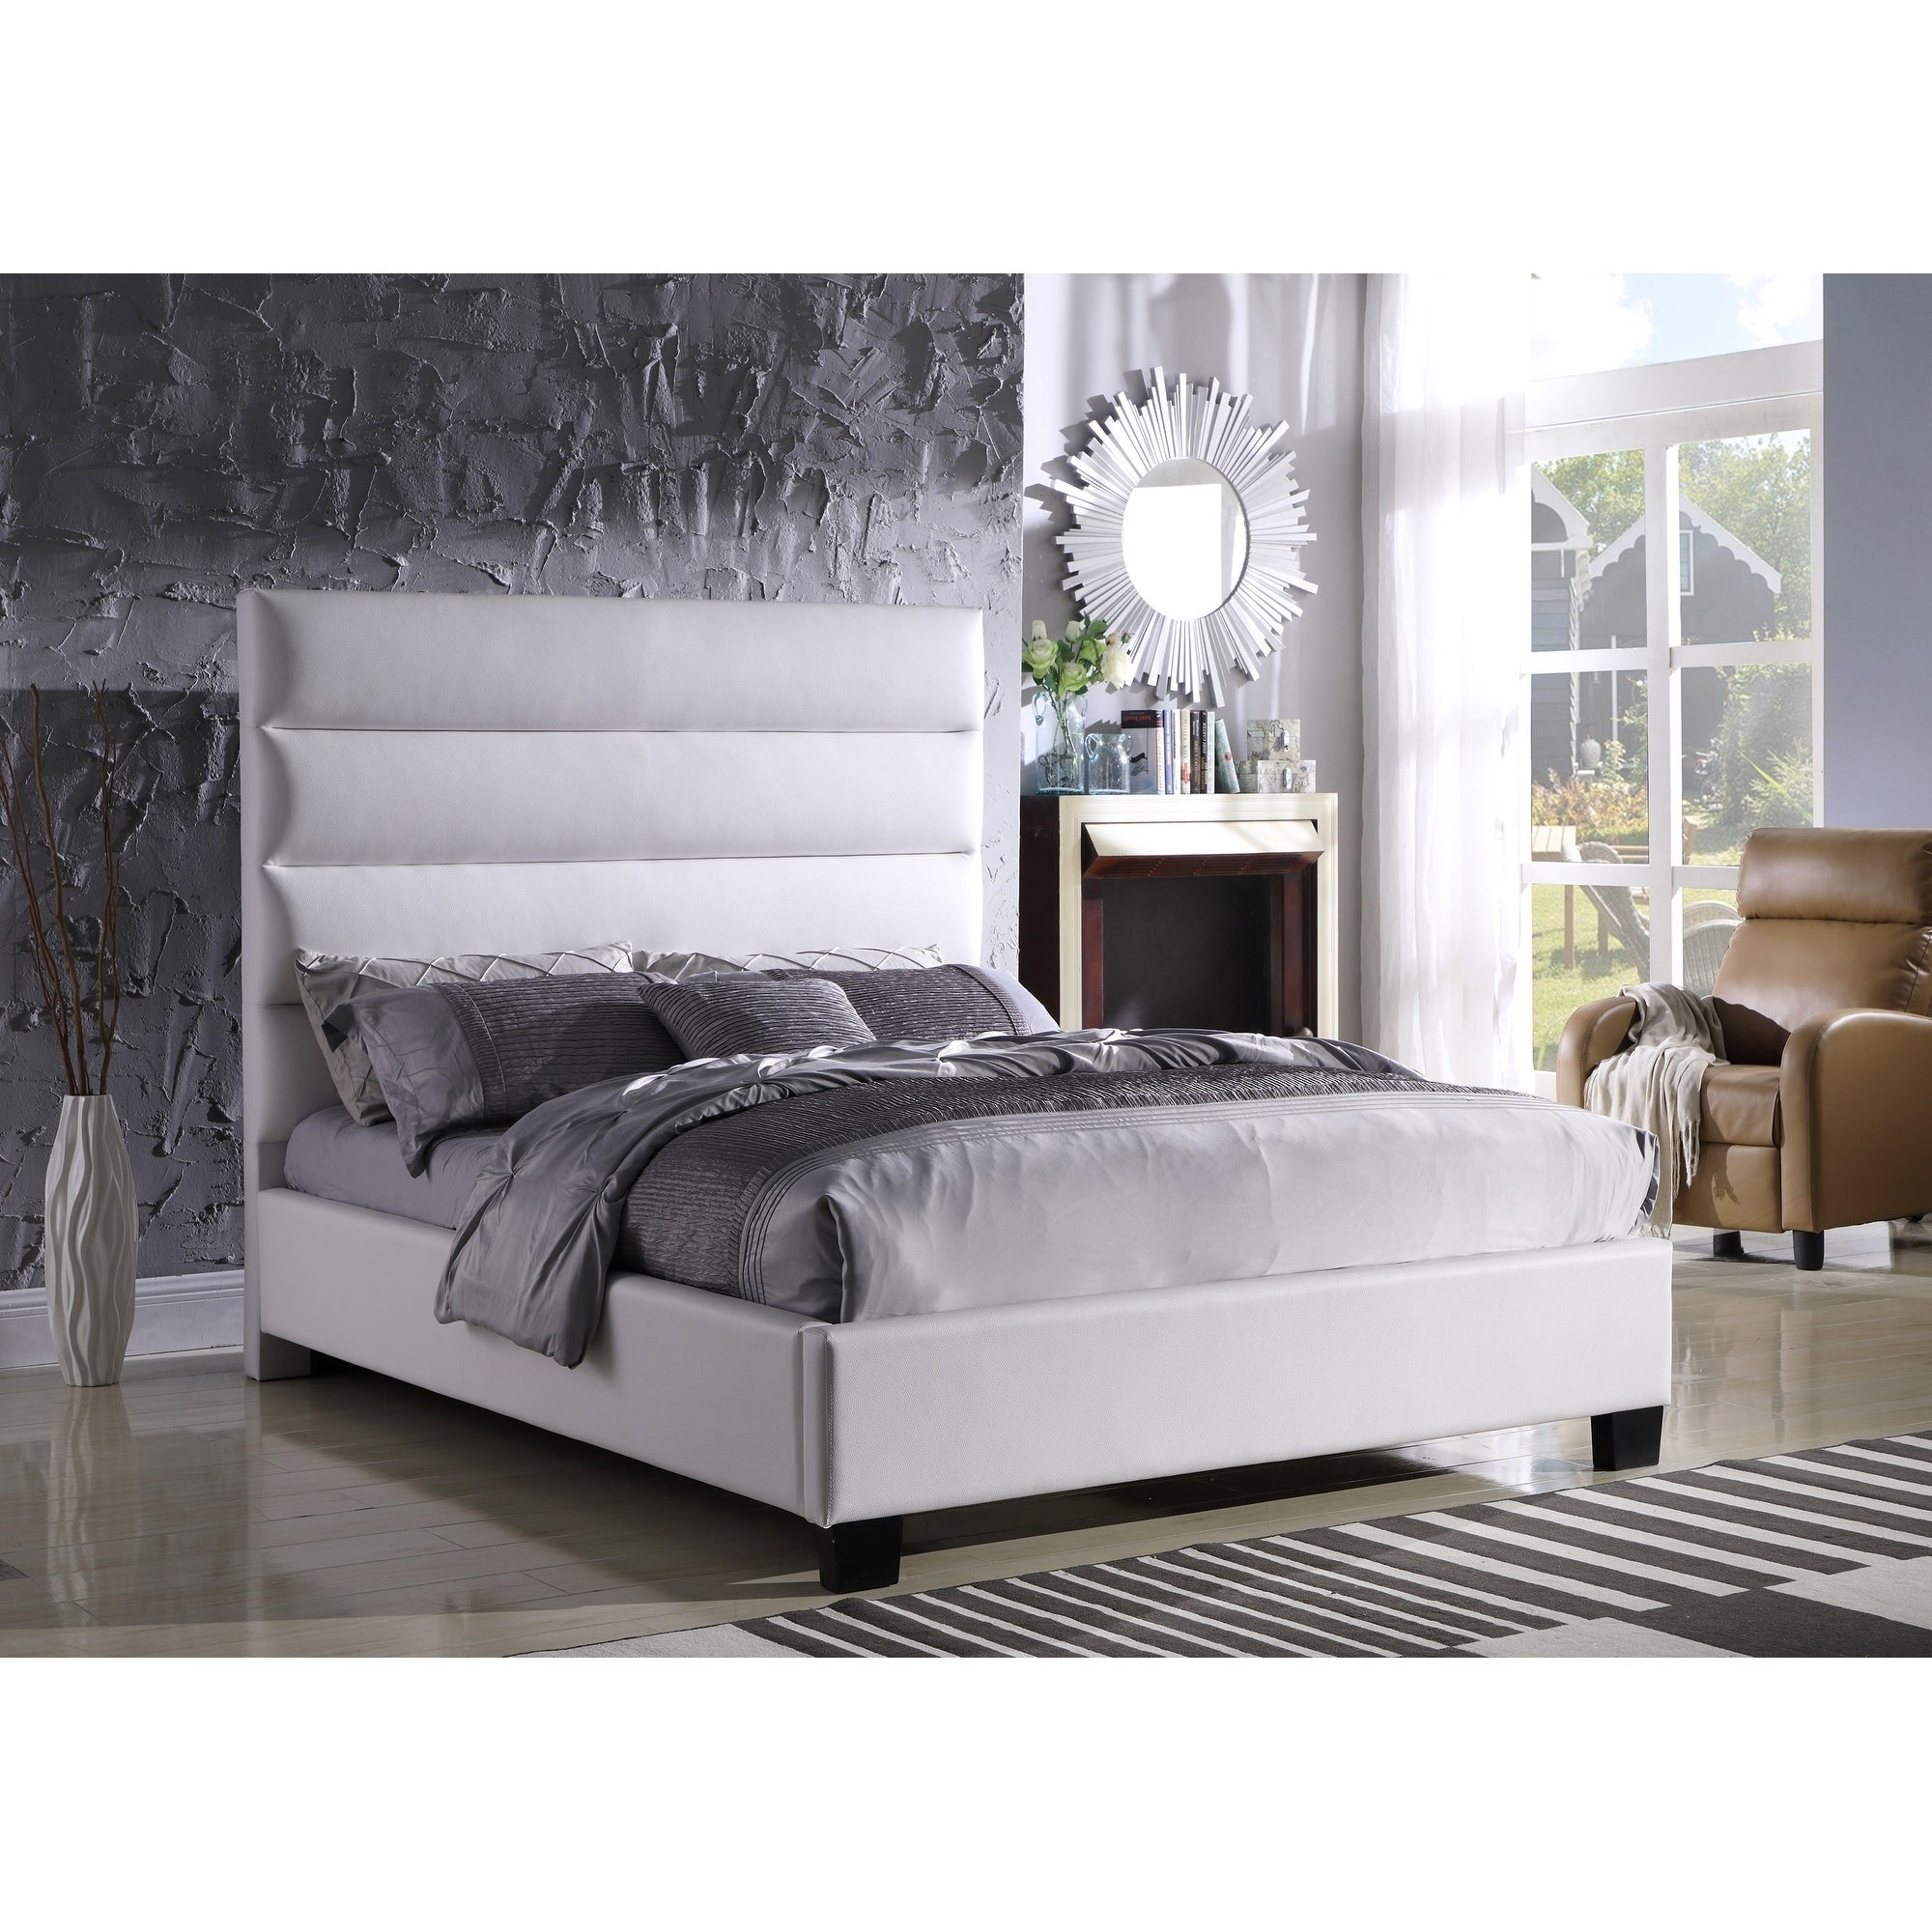 new photos 0824b 3c9a2 Best Master Furniture White Upholstered Platform Bed